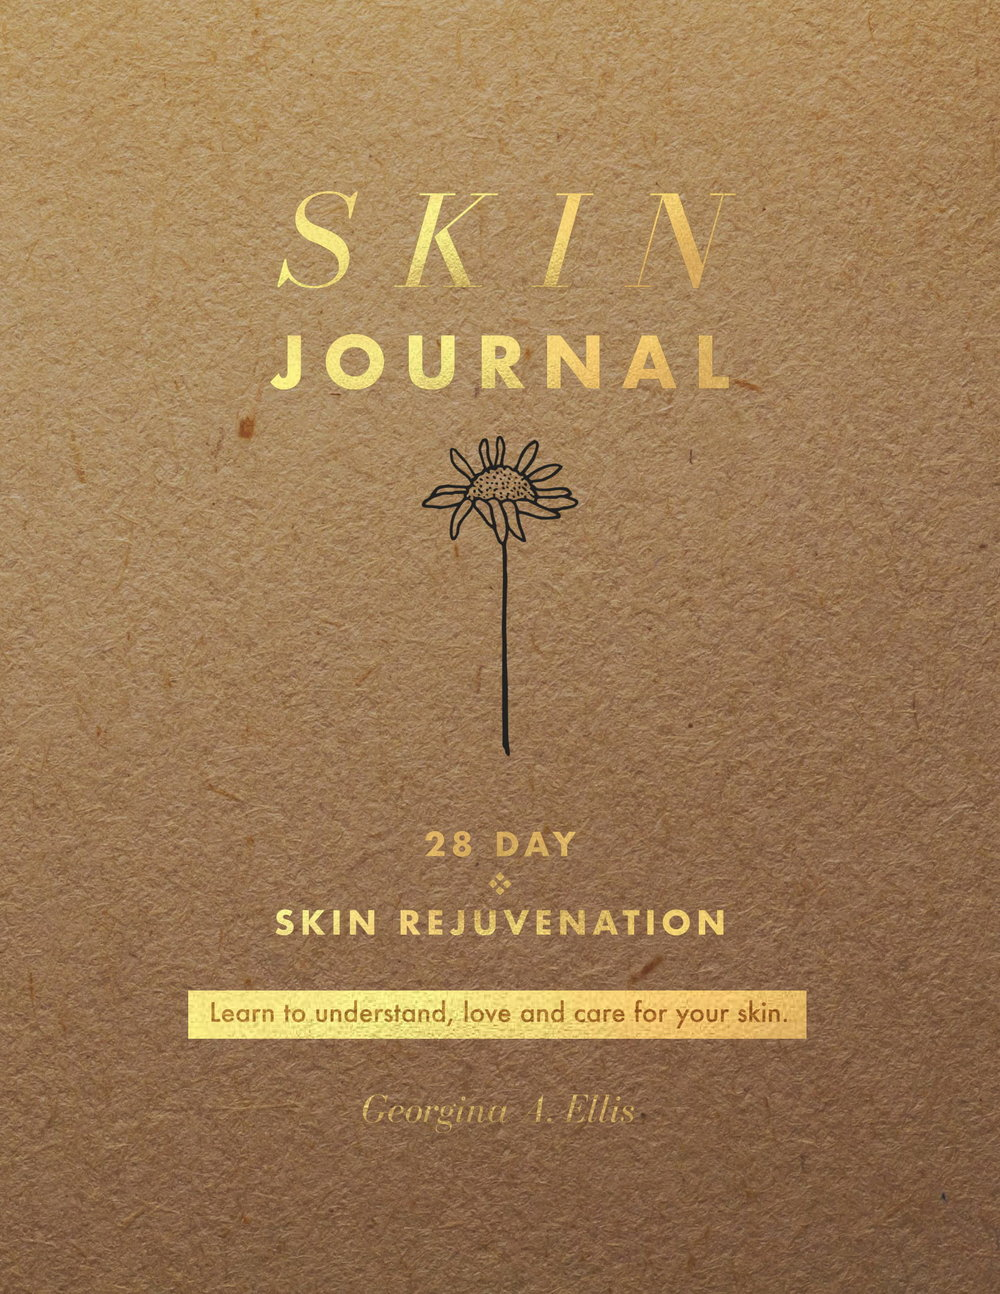 Prefer to learn from the comfort of your own home? - My 28 Day Skin Journal is the ideal companion for transforming your unhealthy habits and unleashing your inner glow.